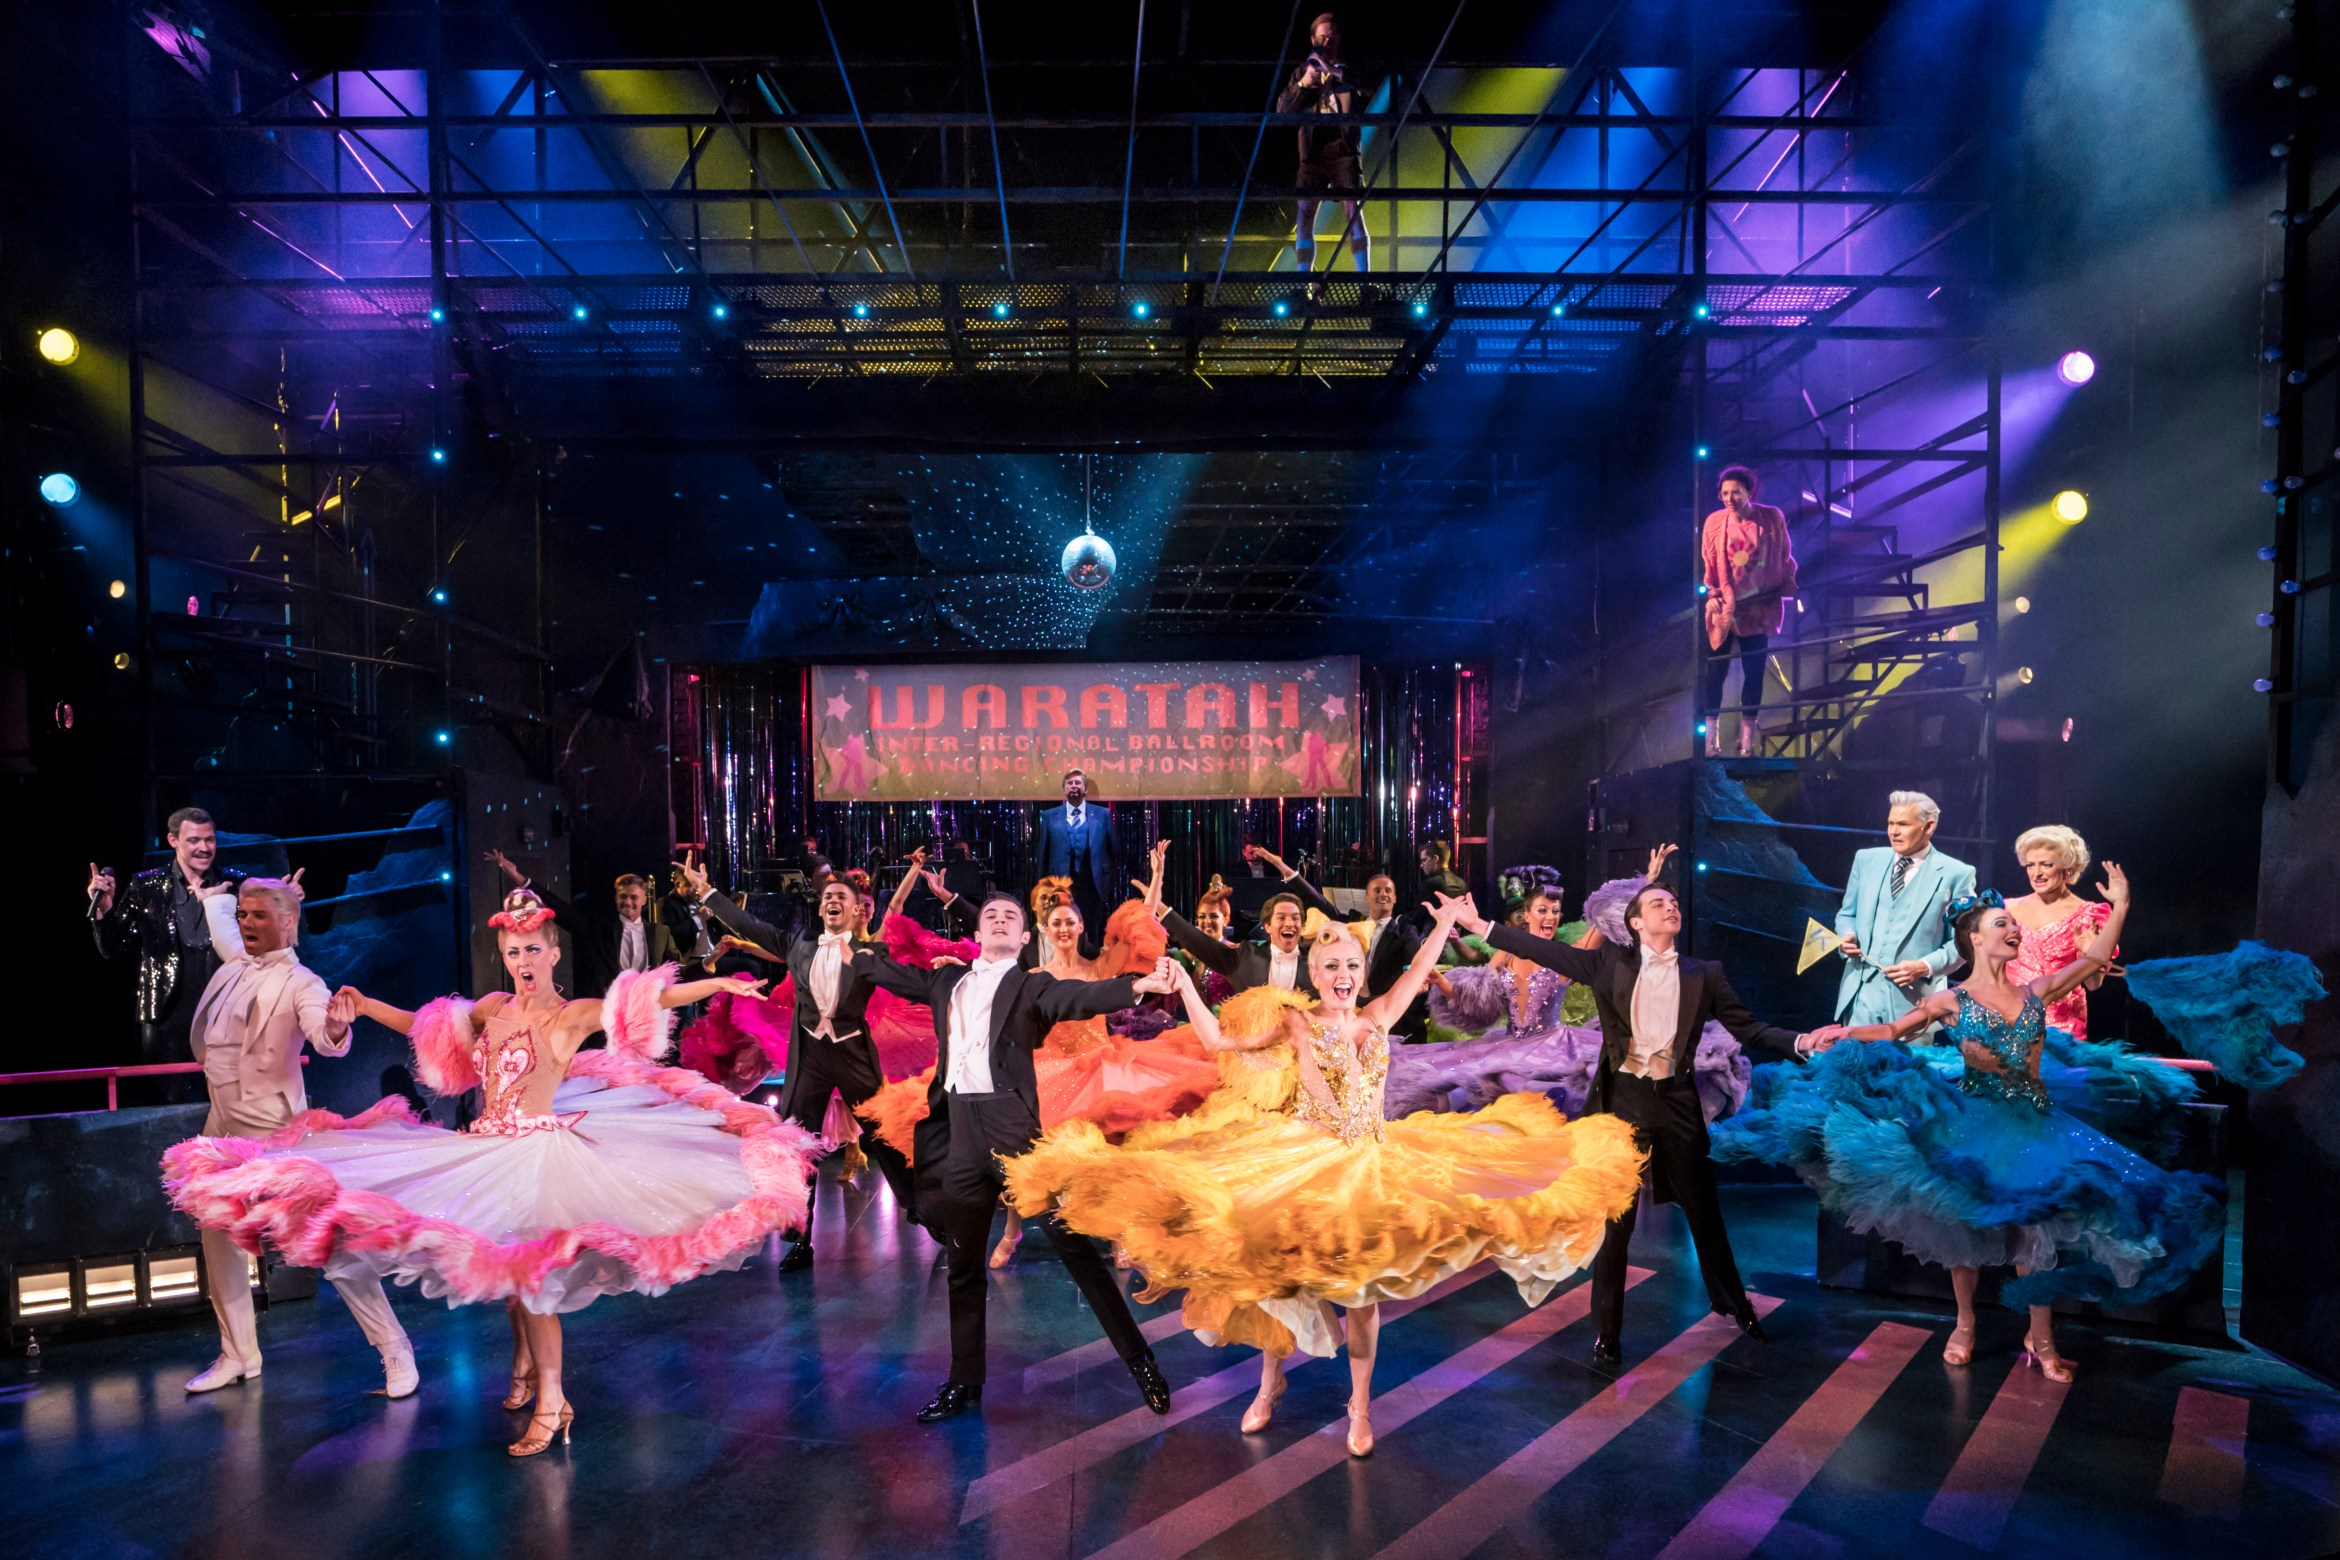 Strictly Ballroom London - Waratah Championship - photo by Johan Persson.jpg